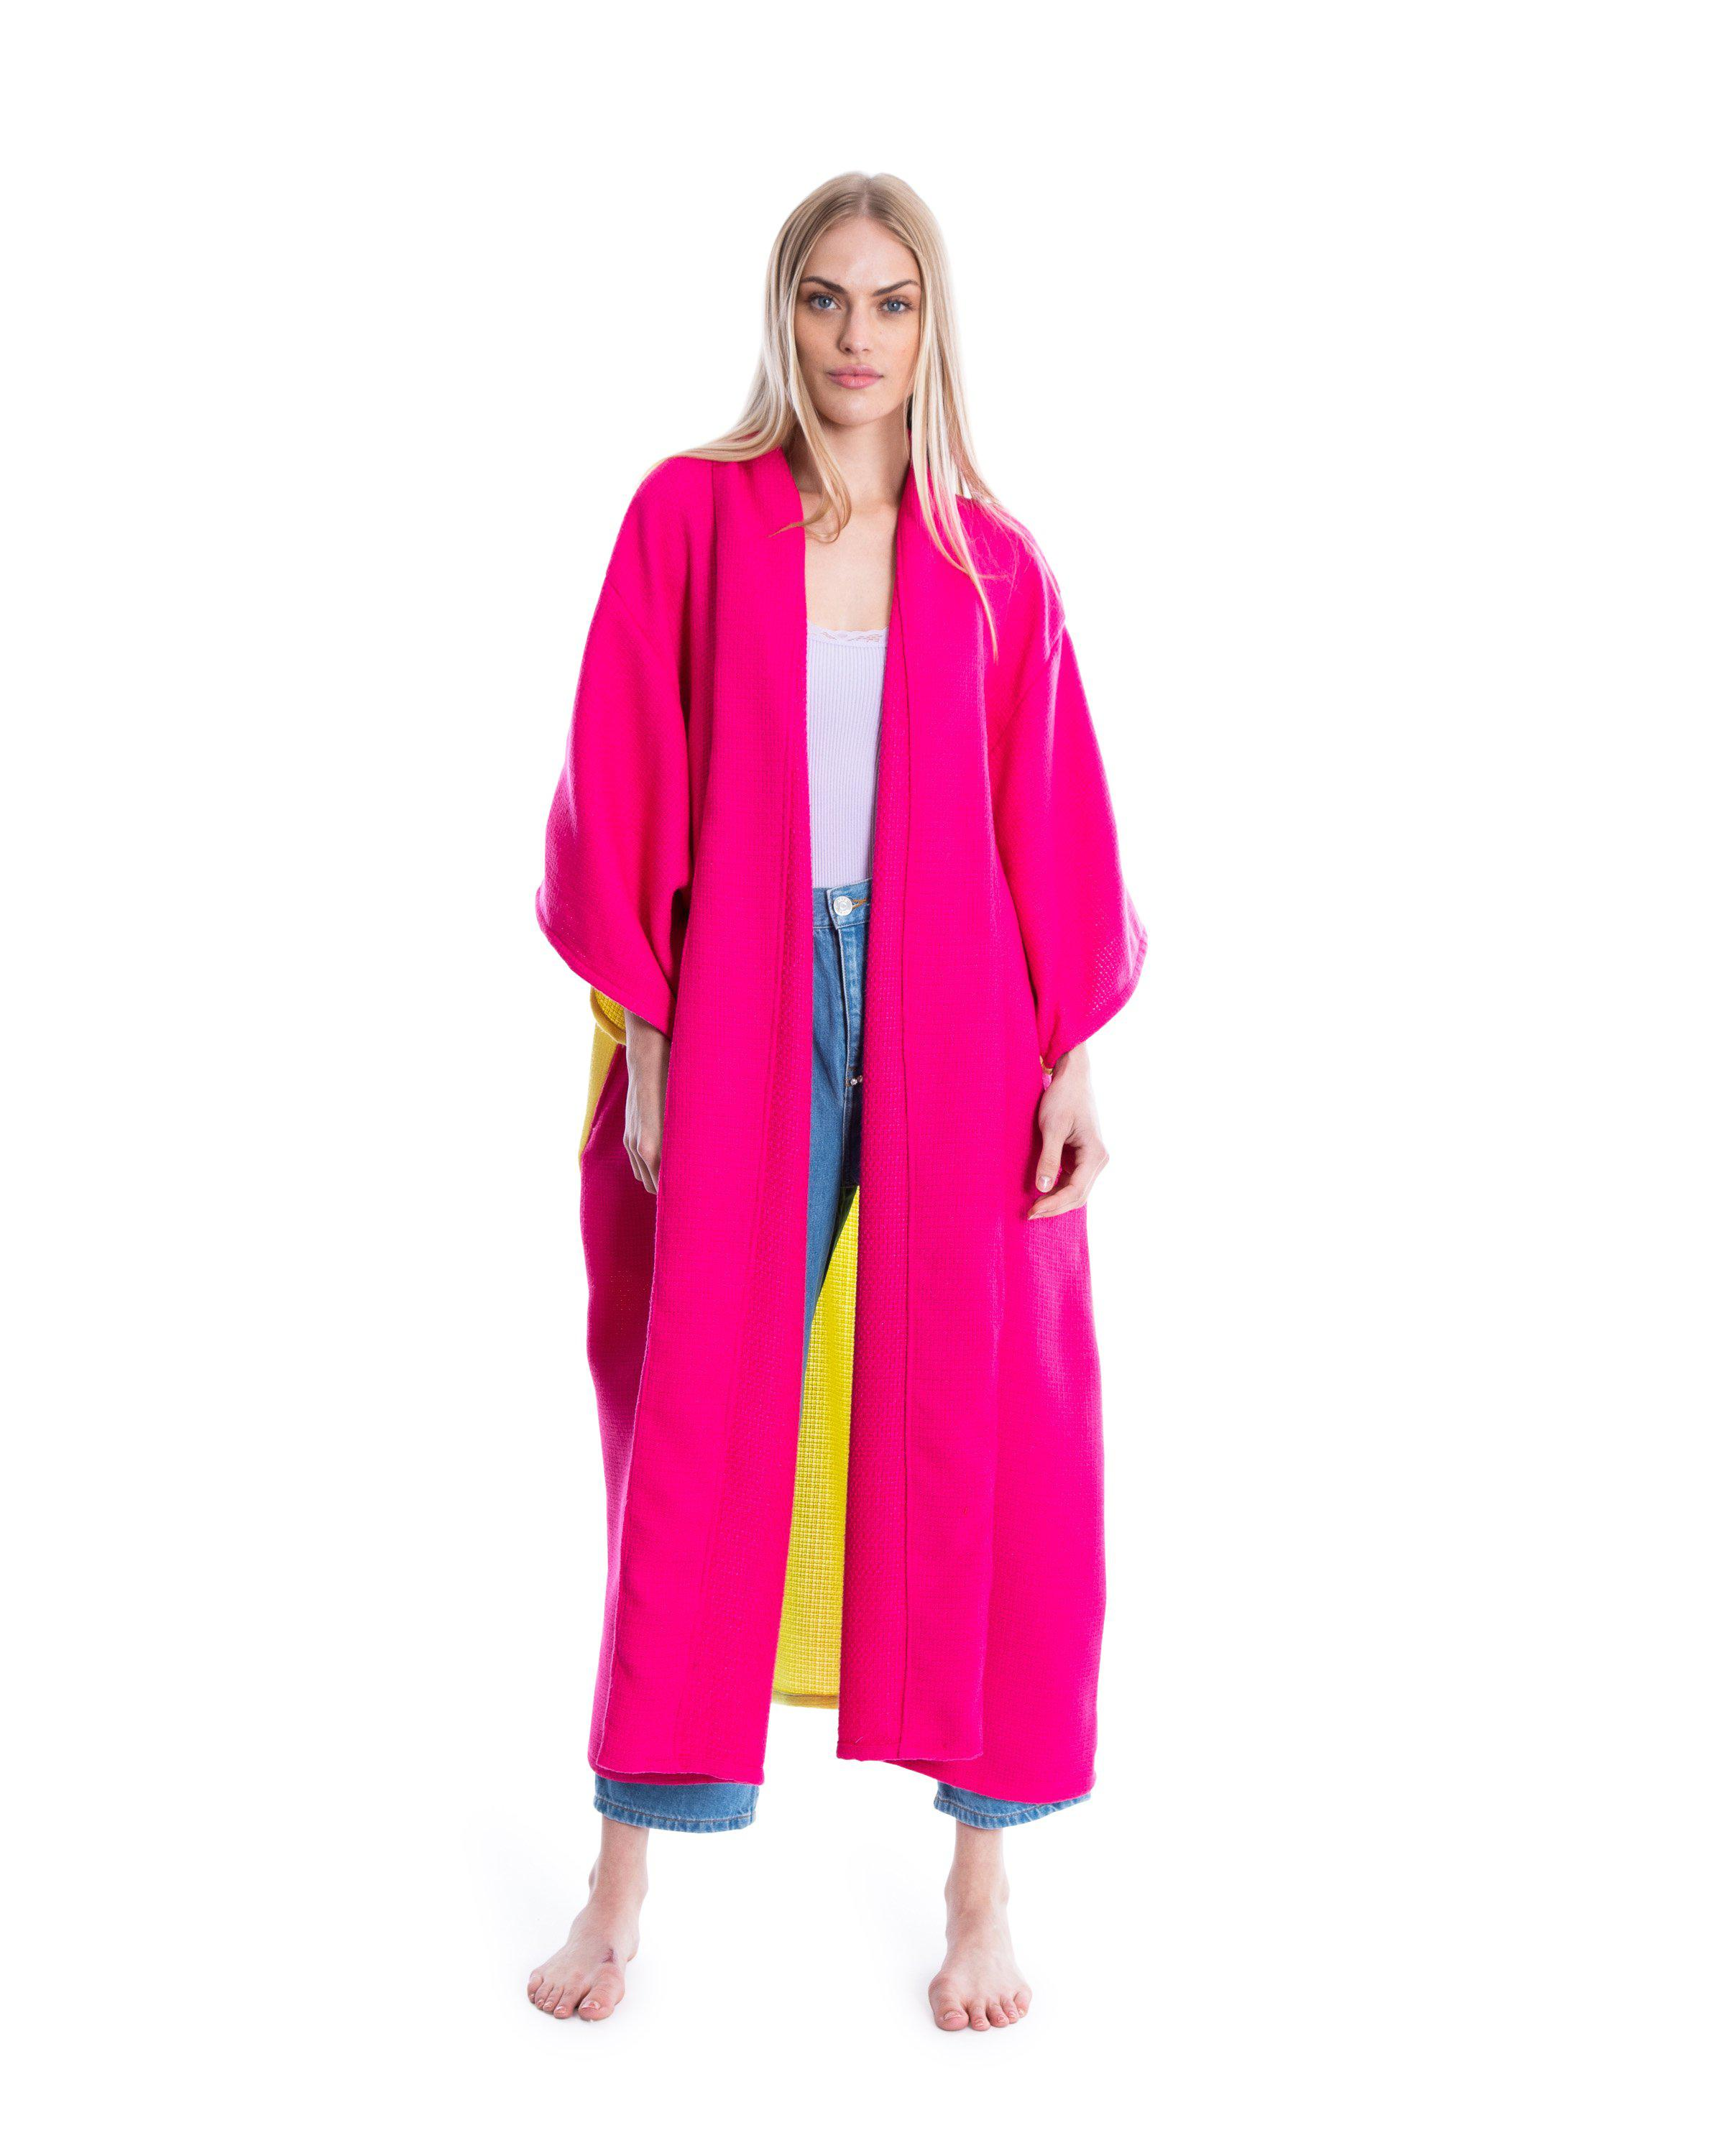 no. 4045 hot pink & yellow duster